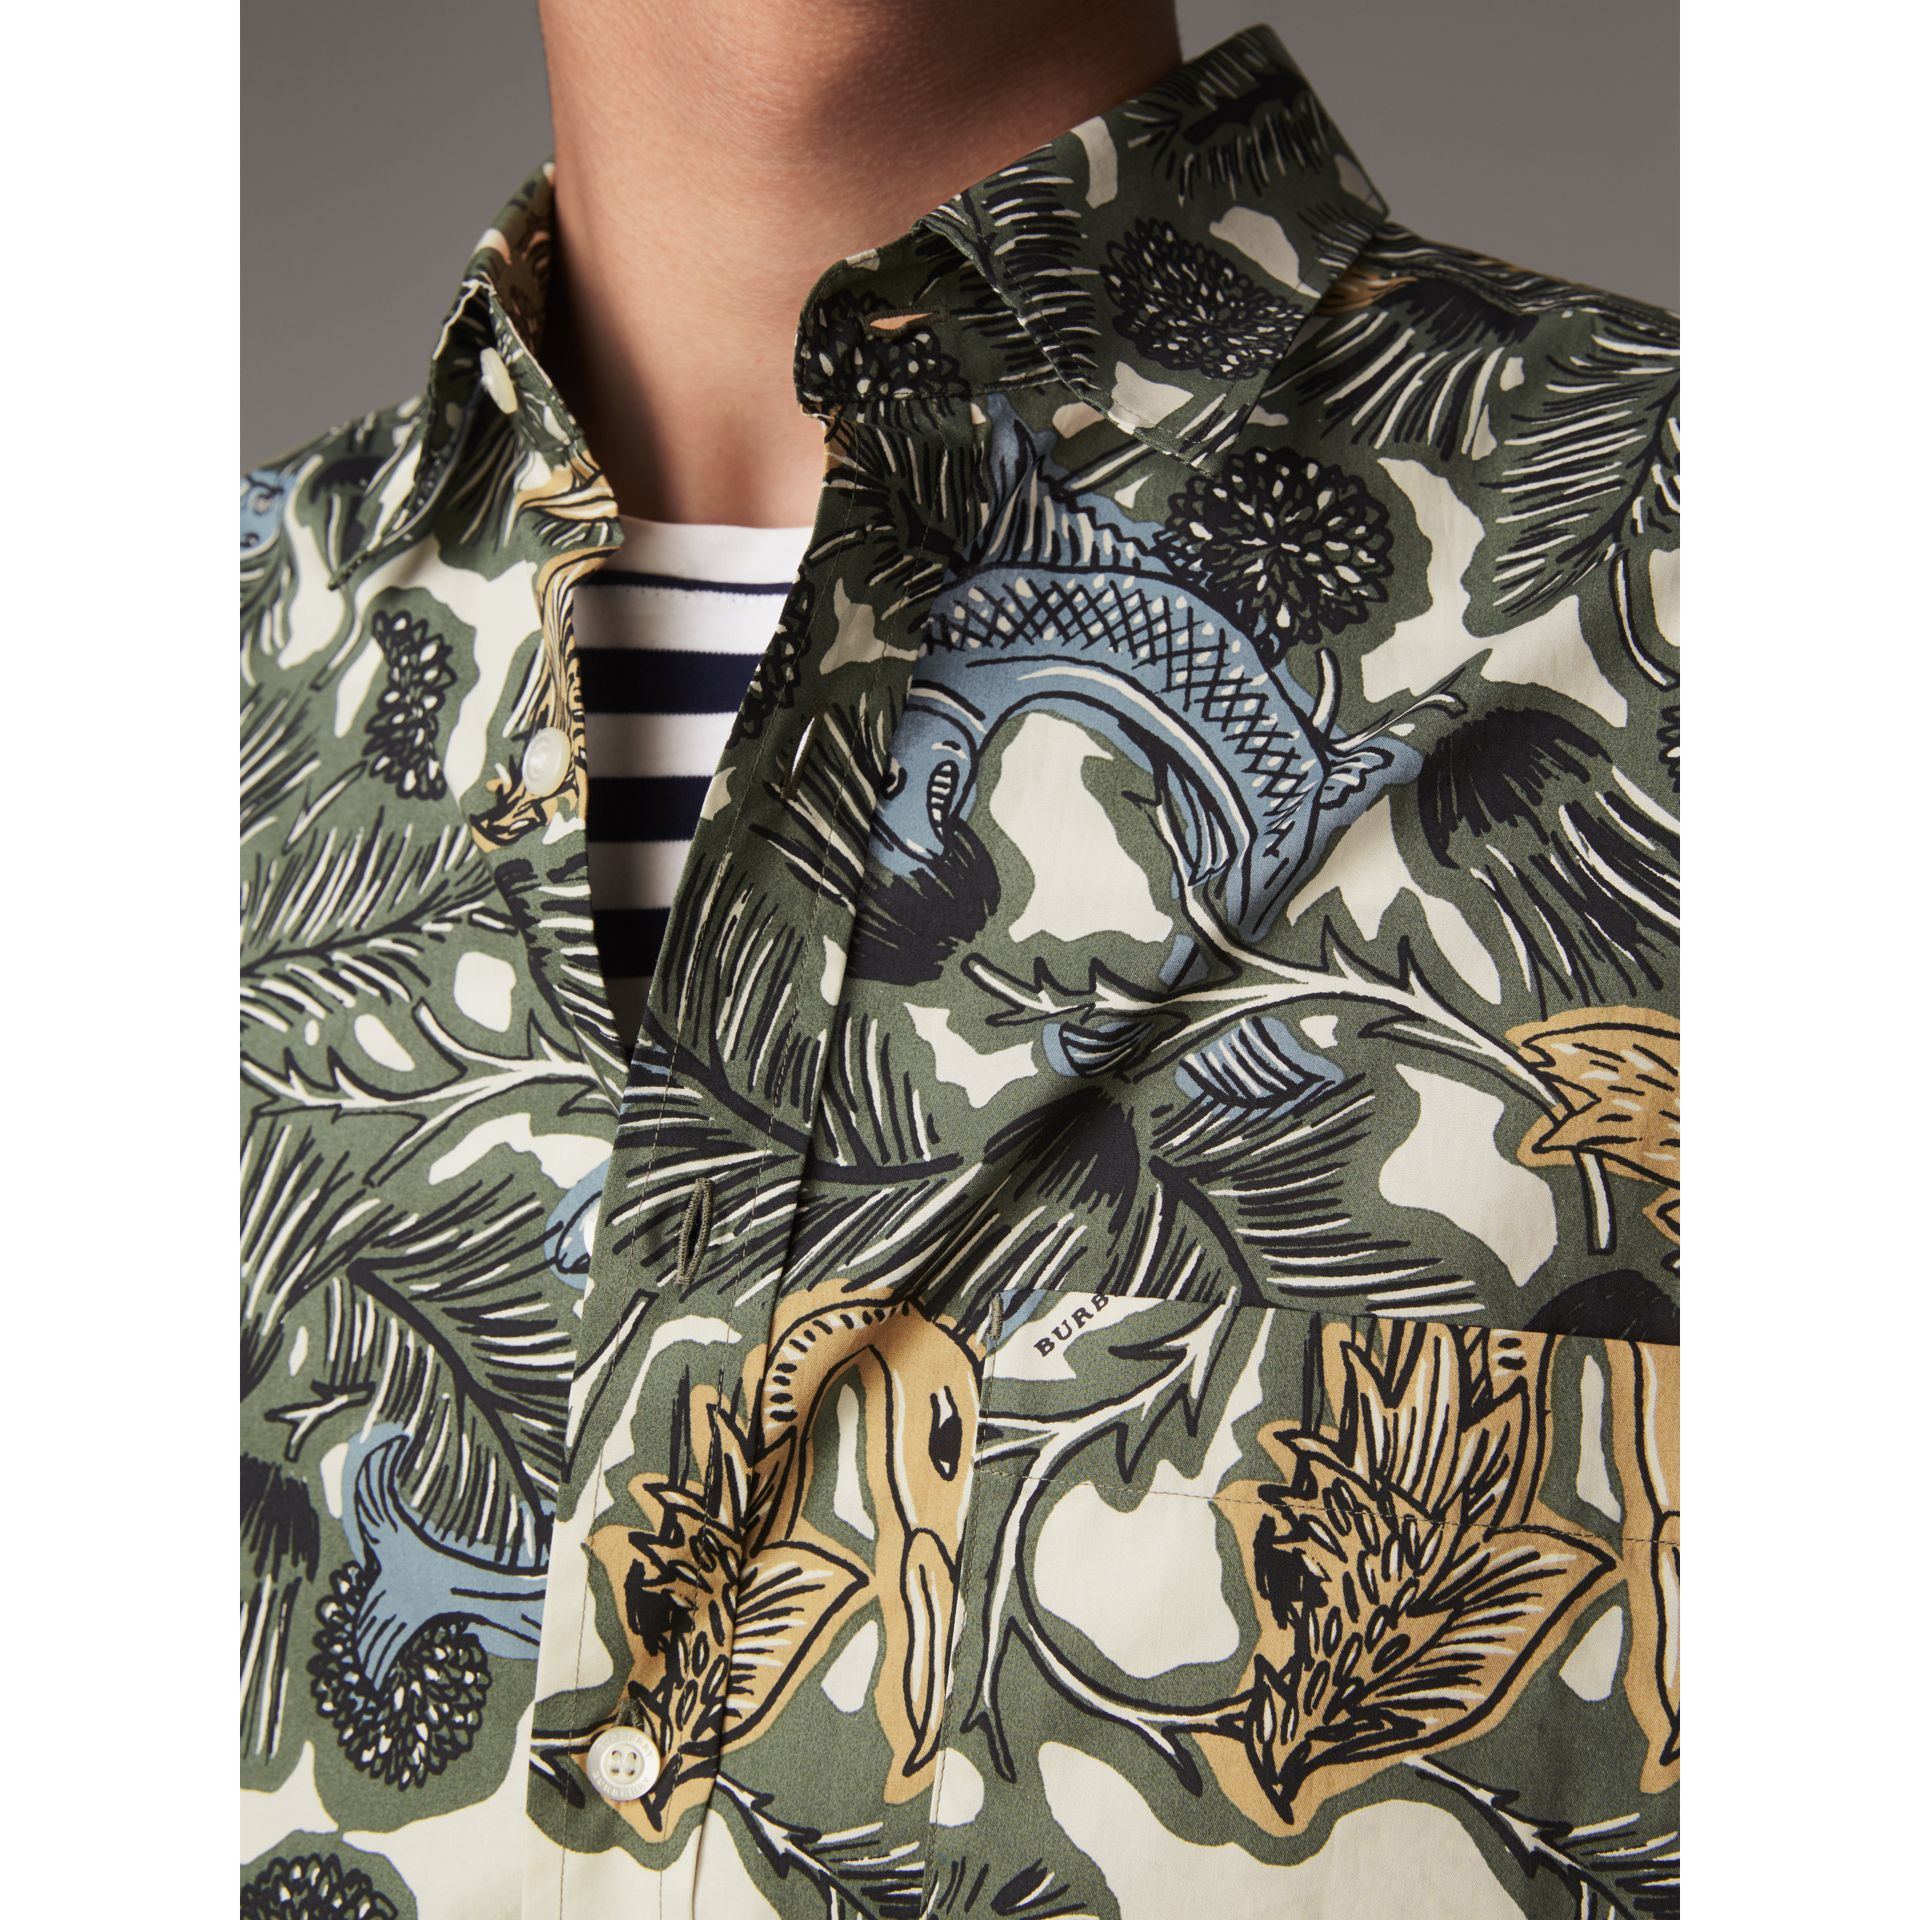 Beasts Print Cotton Poplin Longline Shirt in Sage Green - Men | Burberry - gallery image 2